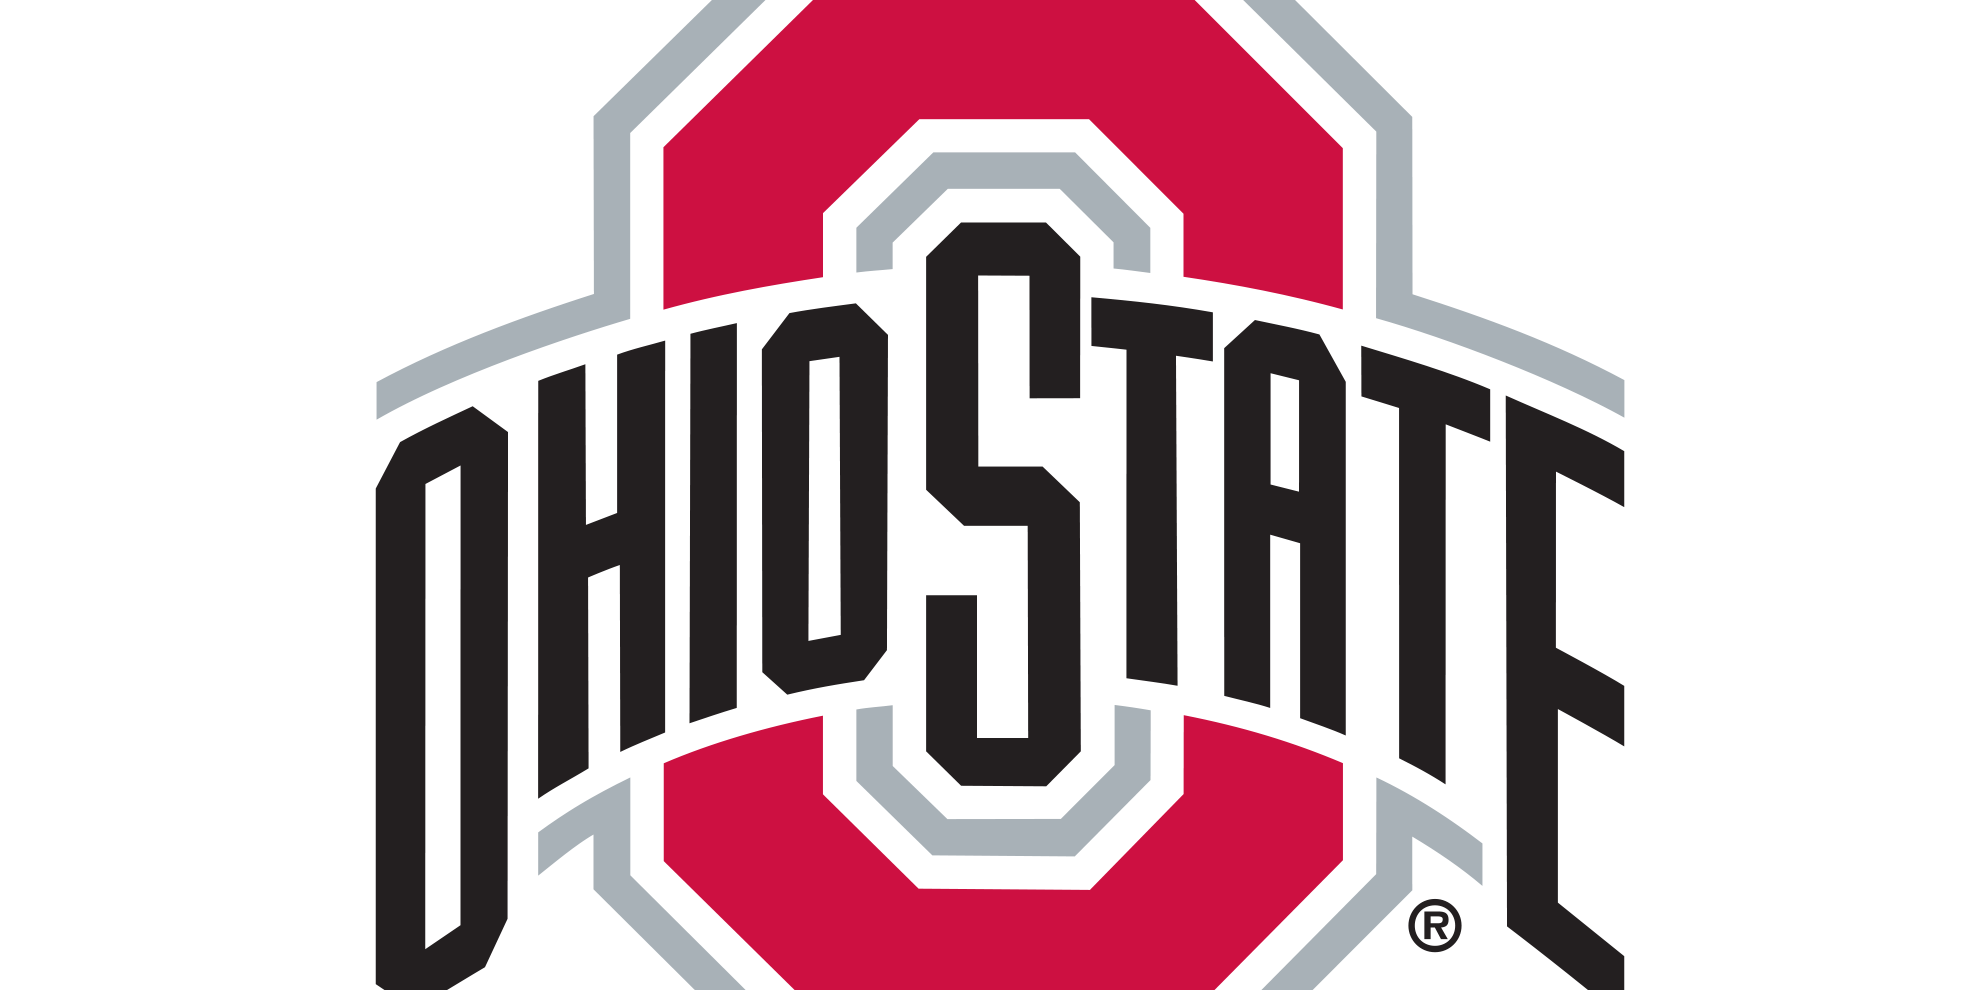 Ohio State denied request to trademark 'The' for merchandise